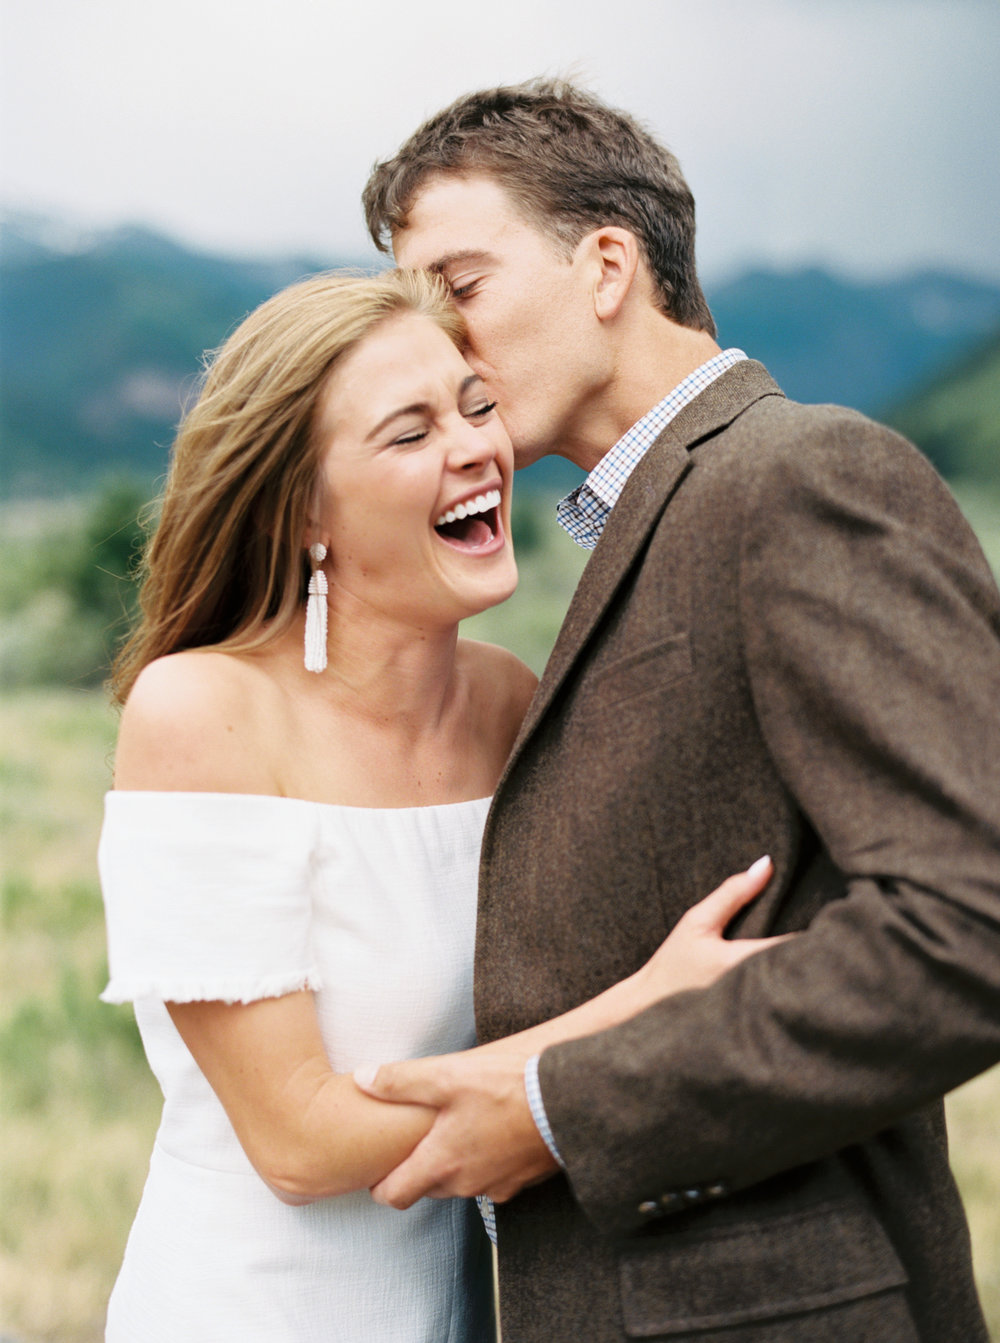 Engagement Session Outfits-33.jpg